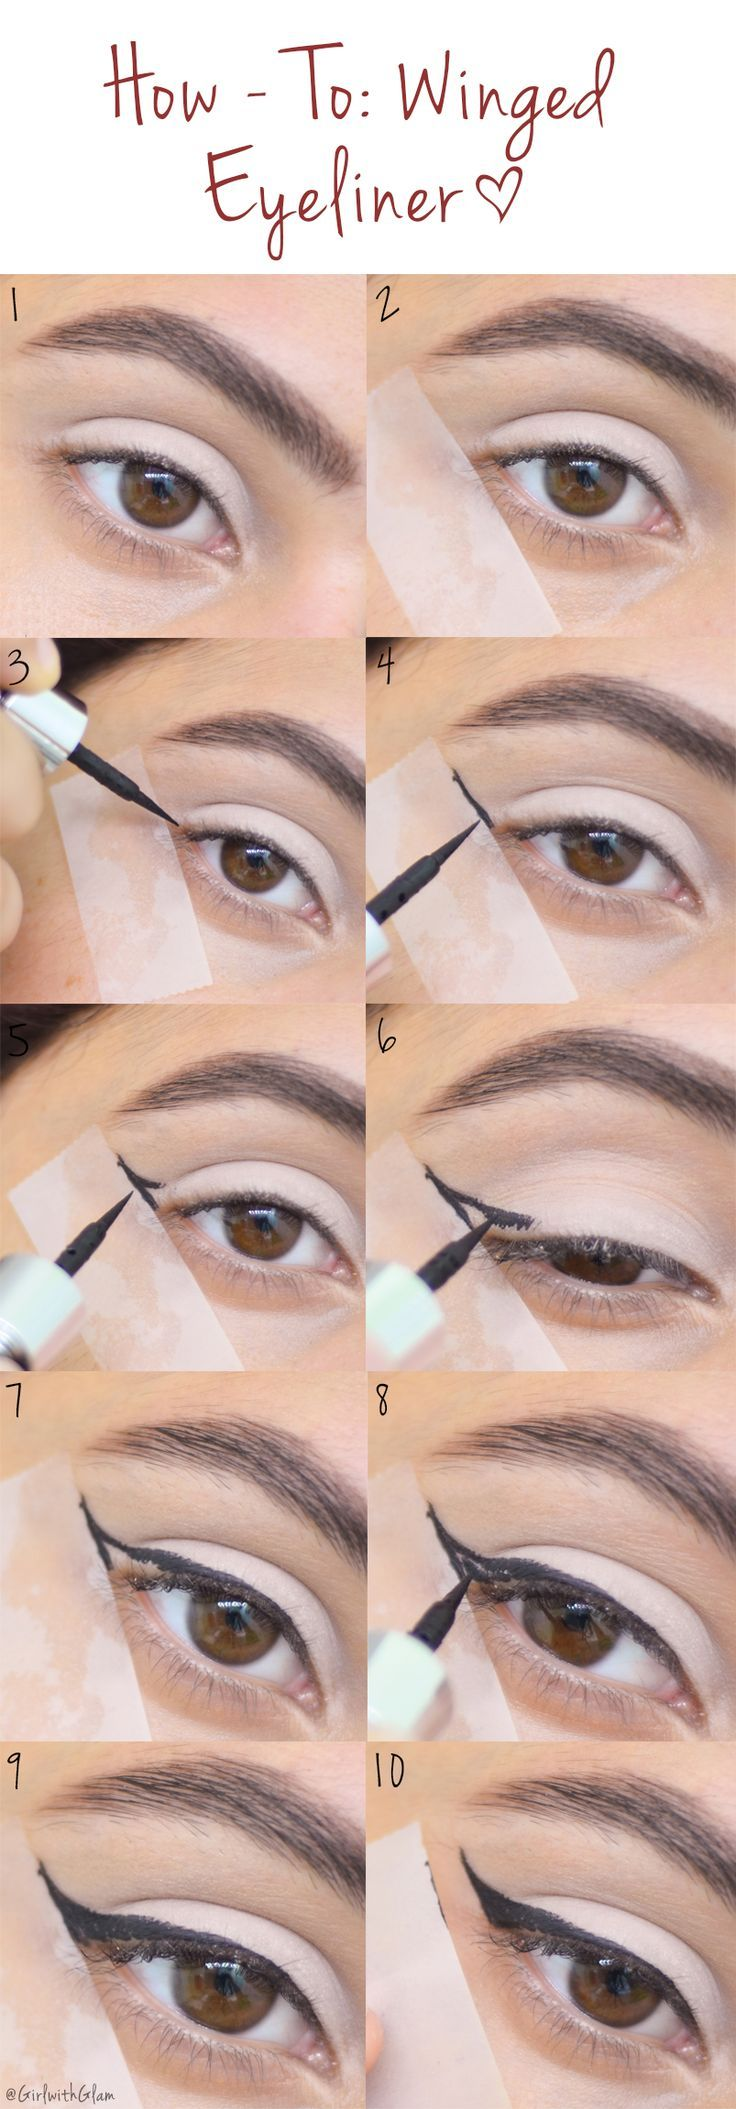 How To: Winged Eyeliner [Tape Method]  #eyeliner #howto #tutorial #makeuptutorial #easyeyeliner #wingedliner #makeup #cosmetics An easy how to tutorial on how to do winged eyeliner using the tape method.